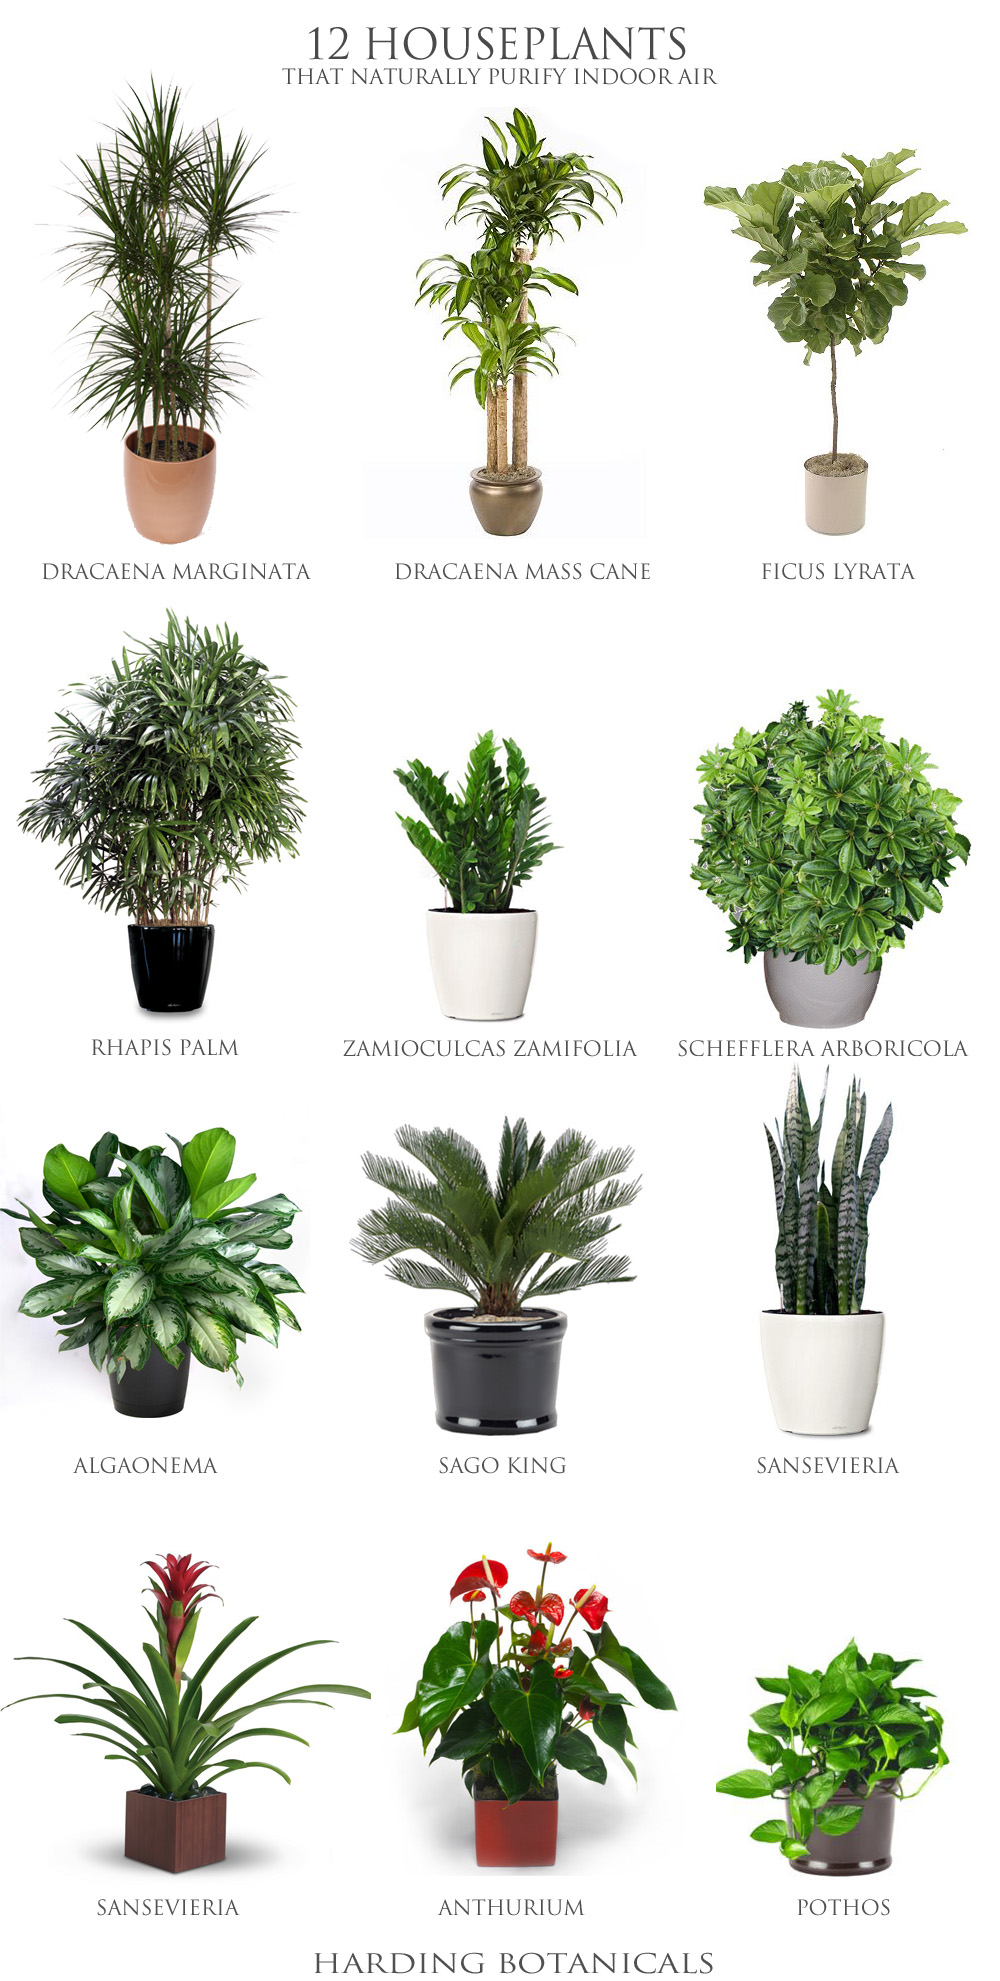 Harding Botanicals_12 house plants.jpg